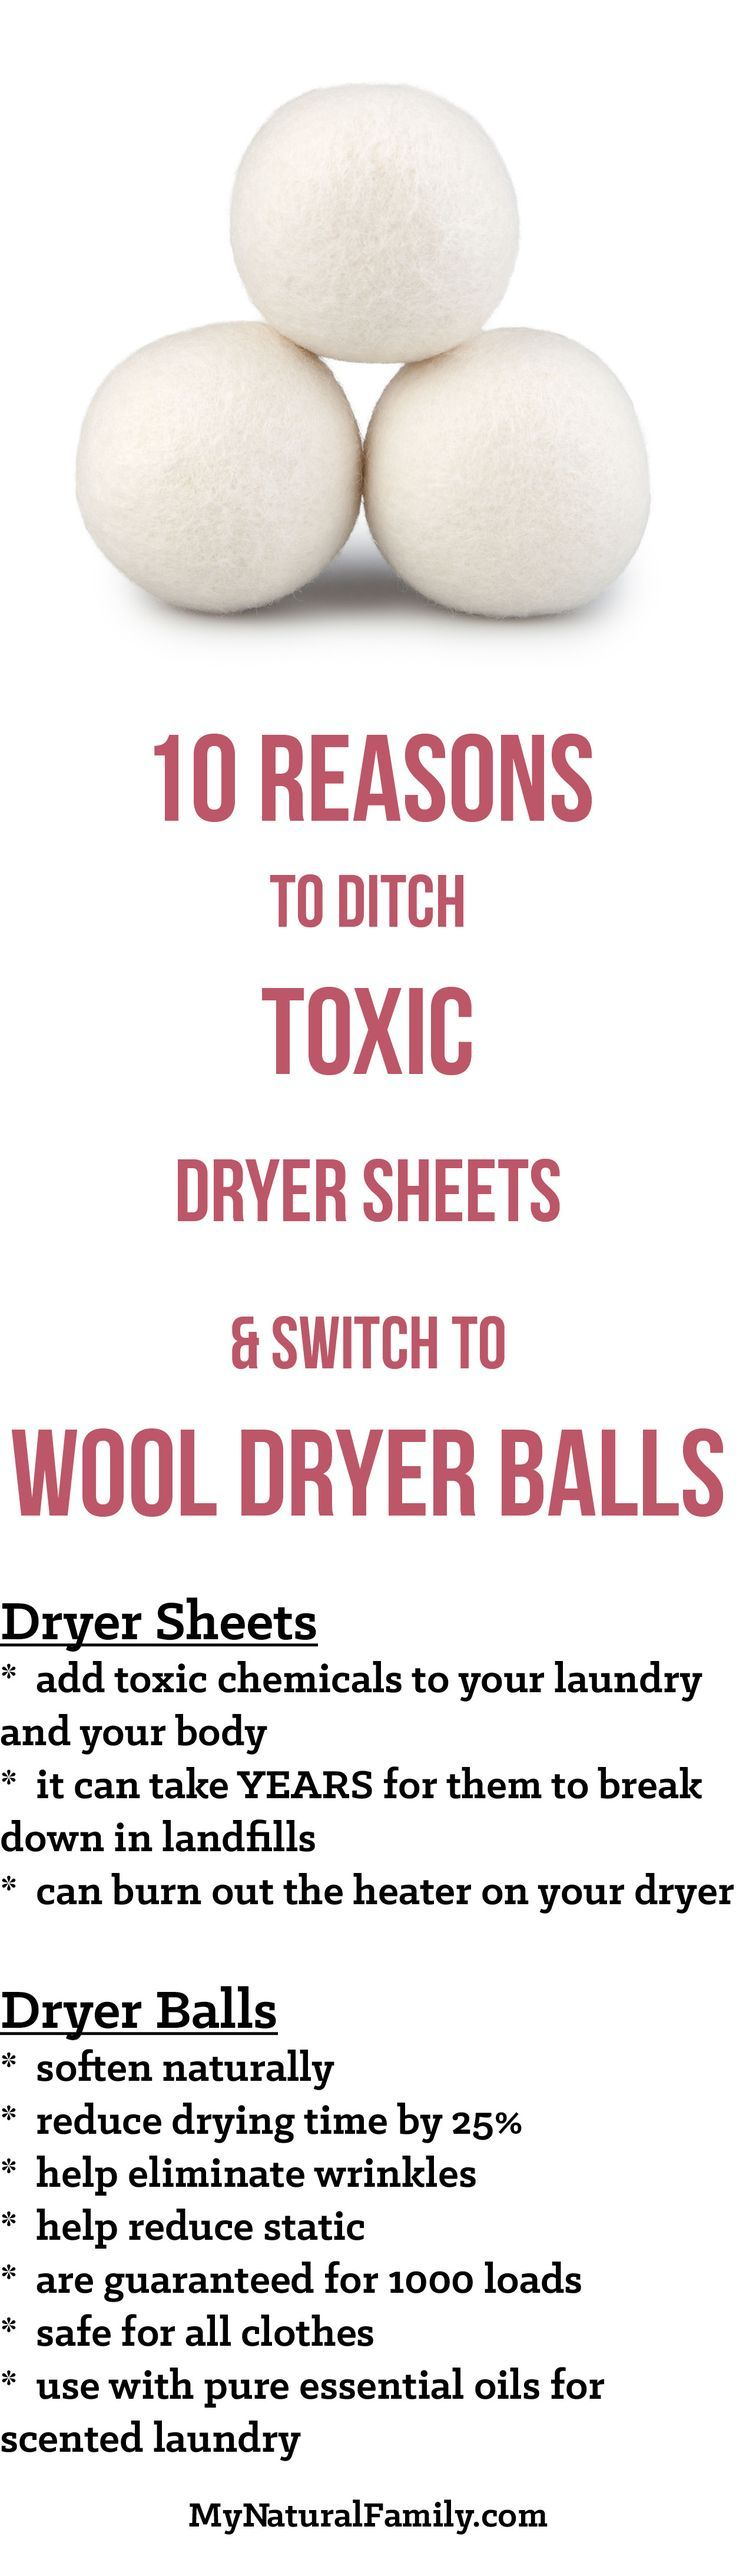 10 Reasons to Ditch Toxic Dryer Sheets   Switch to Wool Dryer Balls. 10 Reasons to Ditch Toxic Dryer Sheets   Switch to Wool Dryer